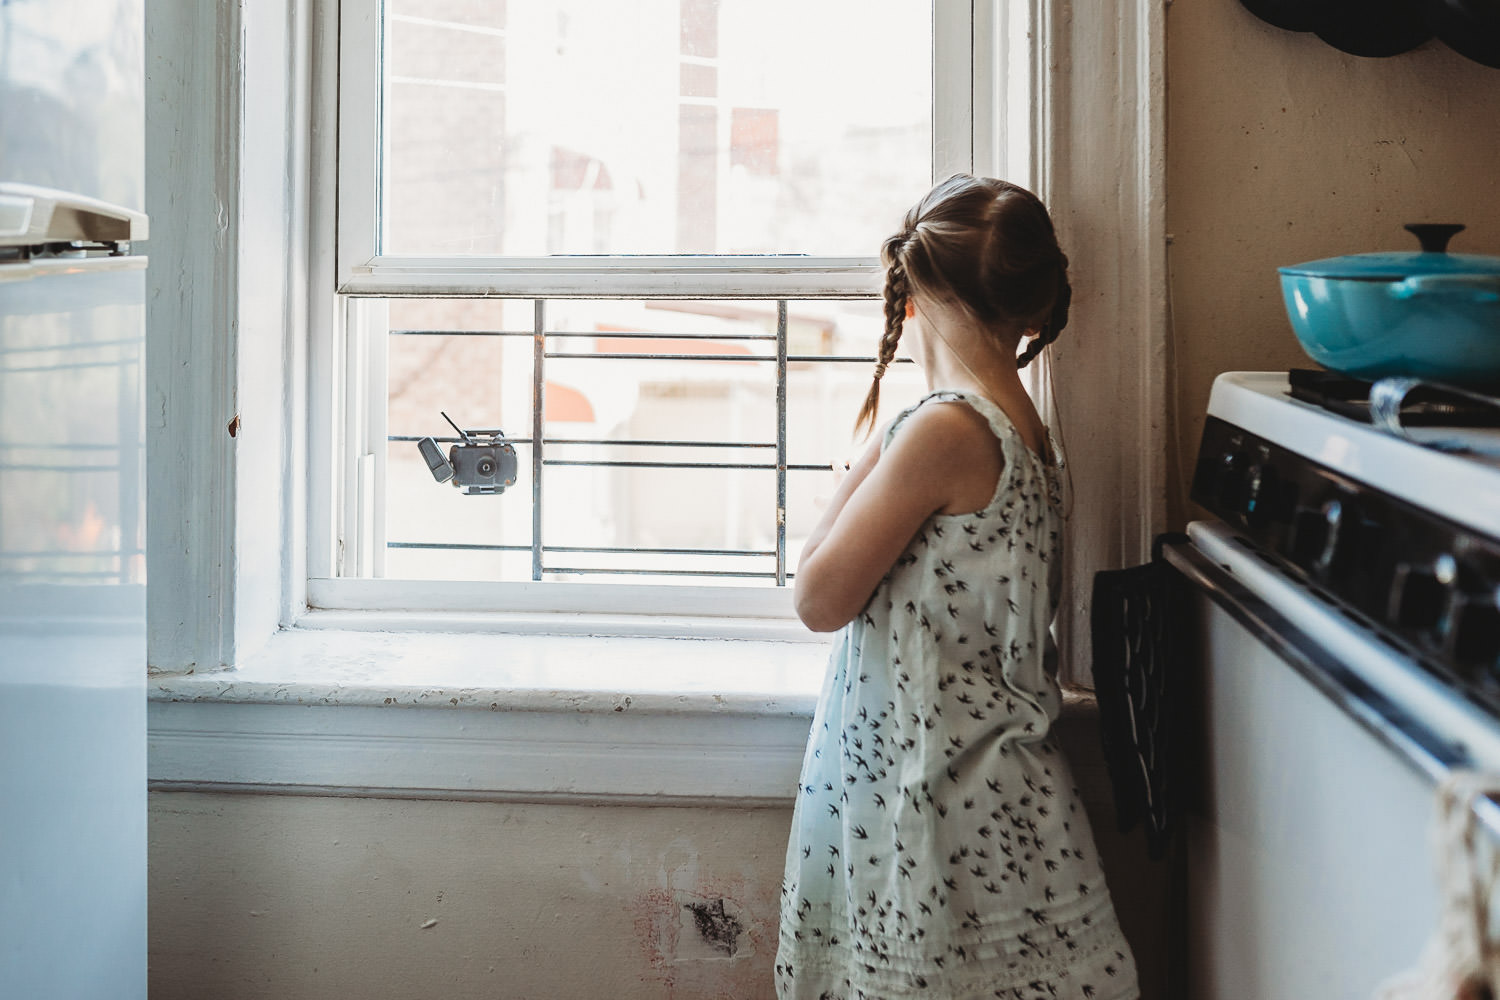 A little girl looks out a kitchen window.